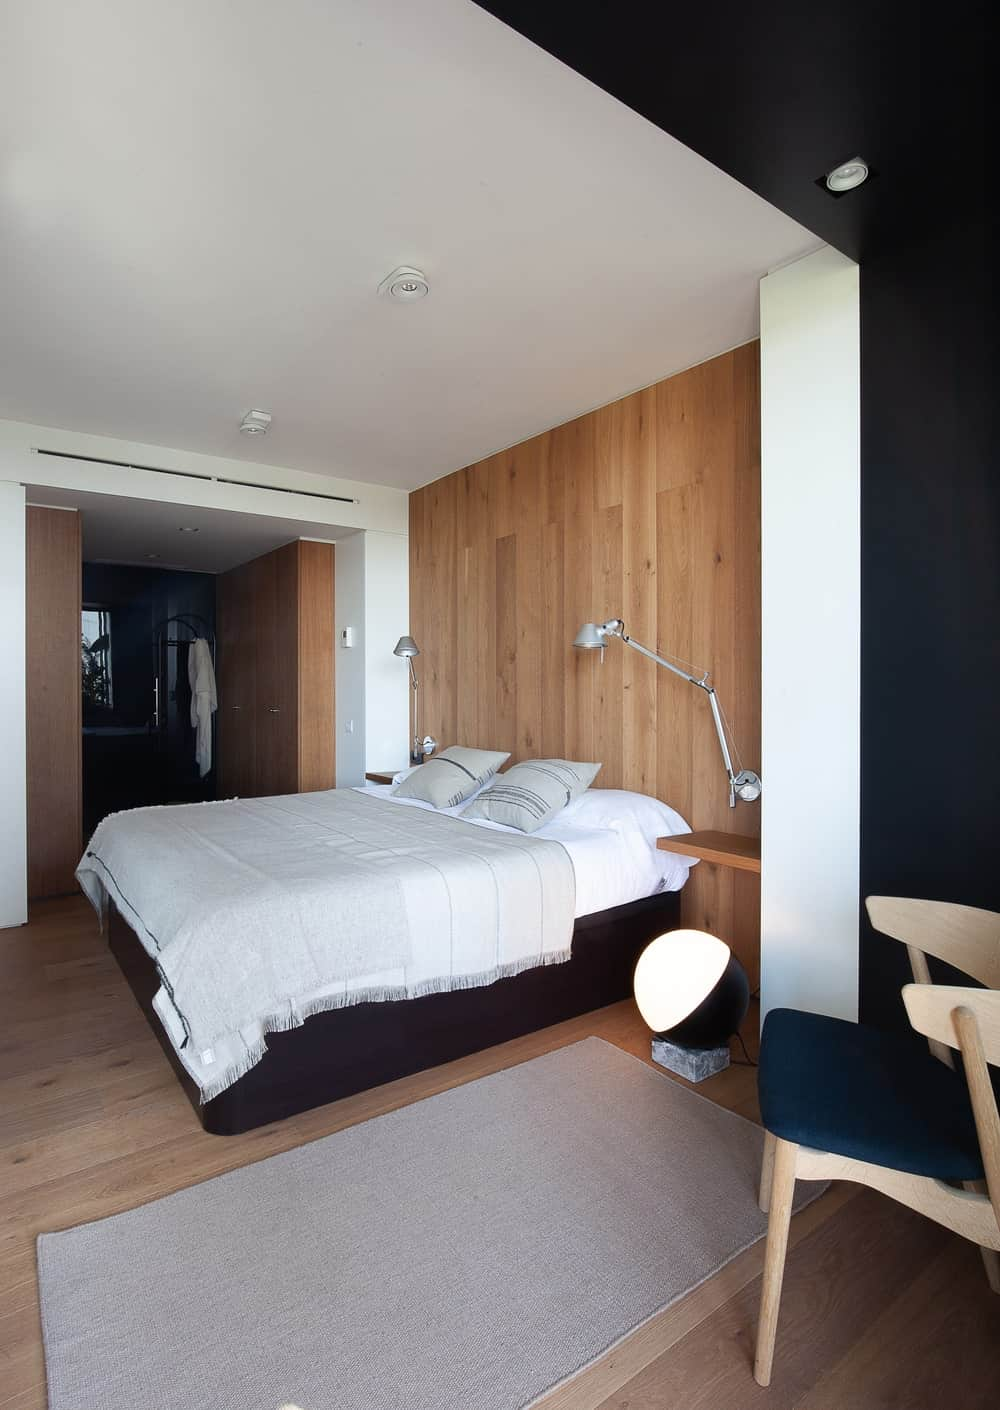 A cozy primary bedroom with a cushioned chair and a platform bed complemented by built-in nightstands fixed on the wood-paneled walls. There are facing wardrobes on the side flanking the glass-enclosed bathroom.